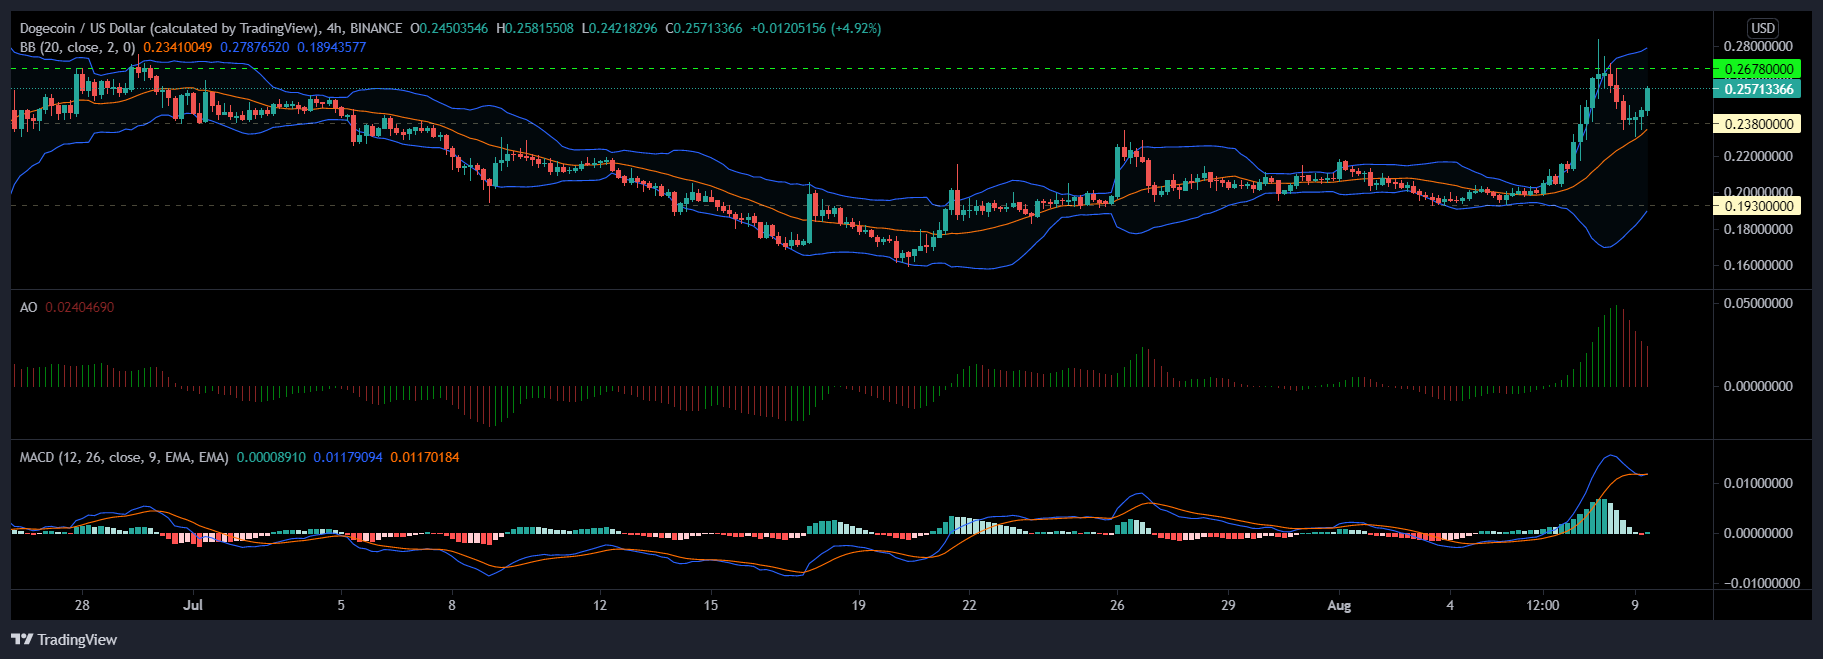 XRP, Binance Coin and Dogecoin Price Analysis: 09 August